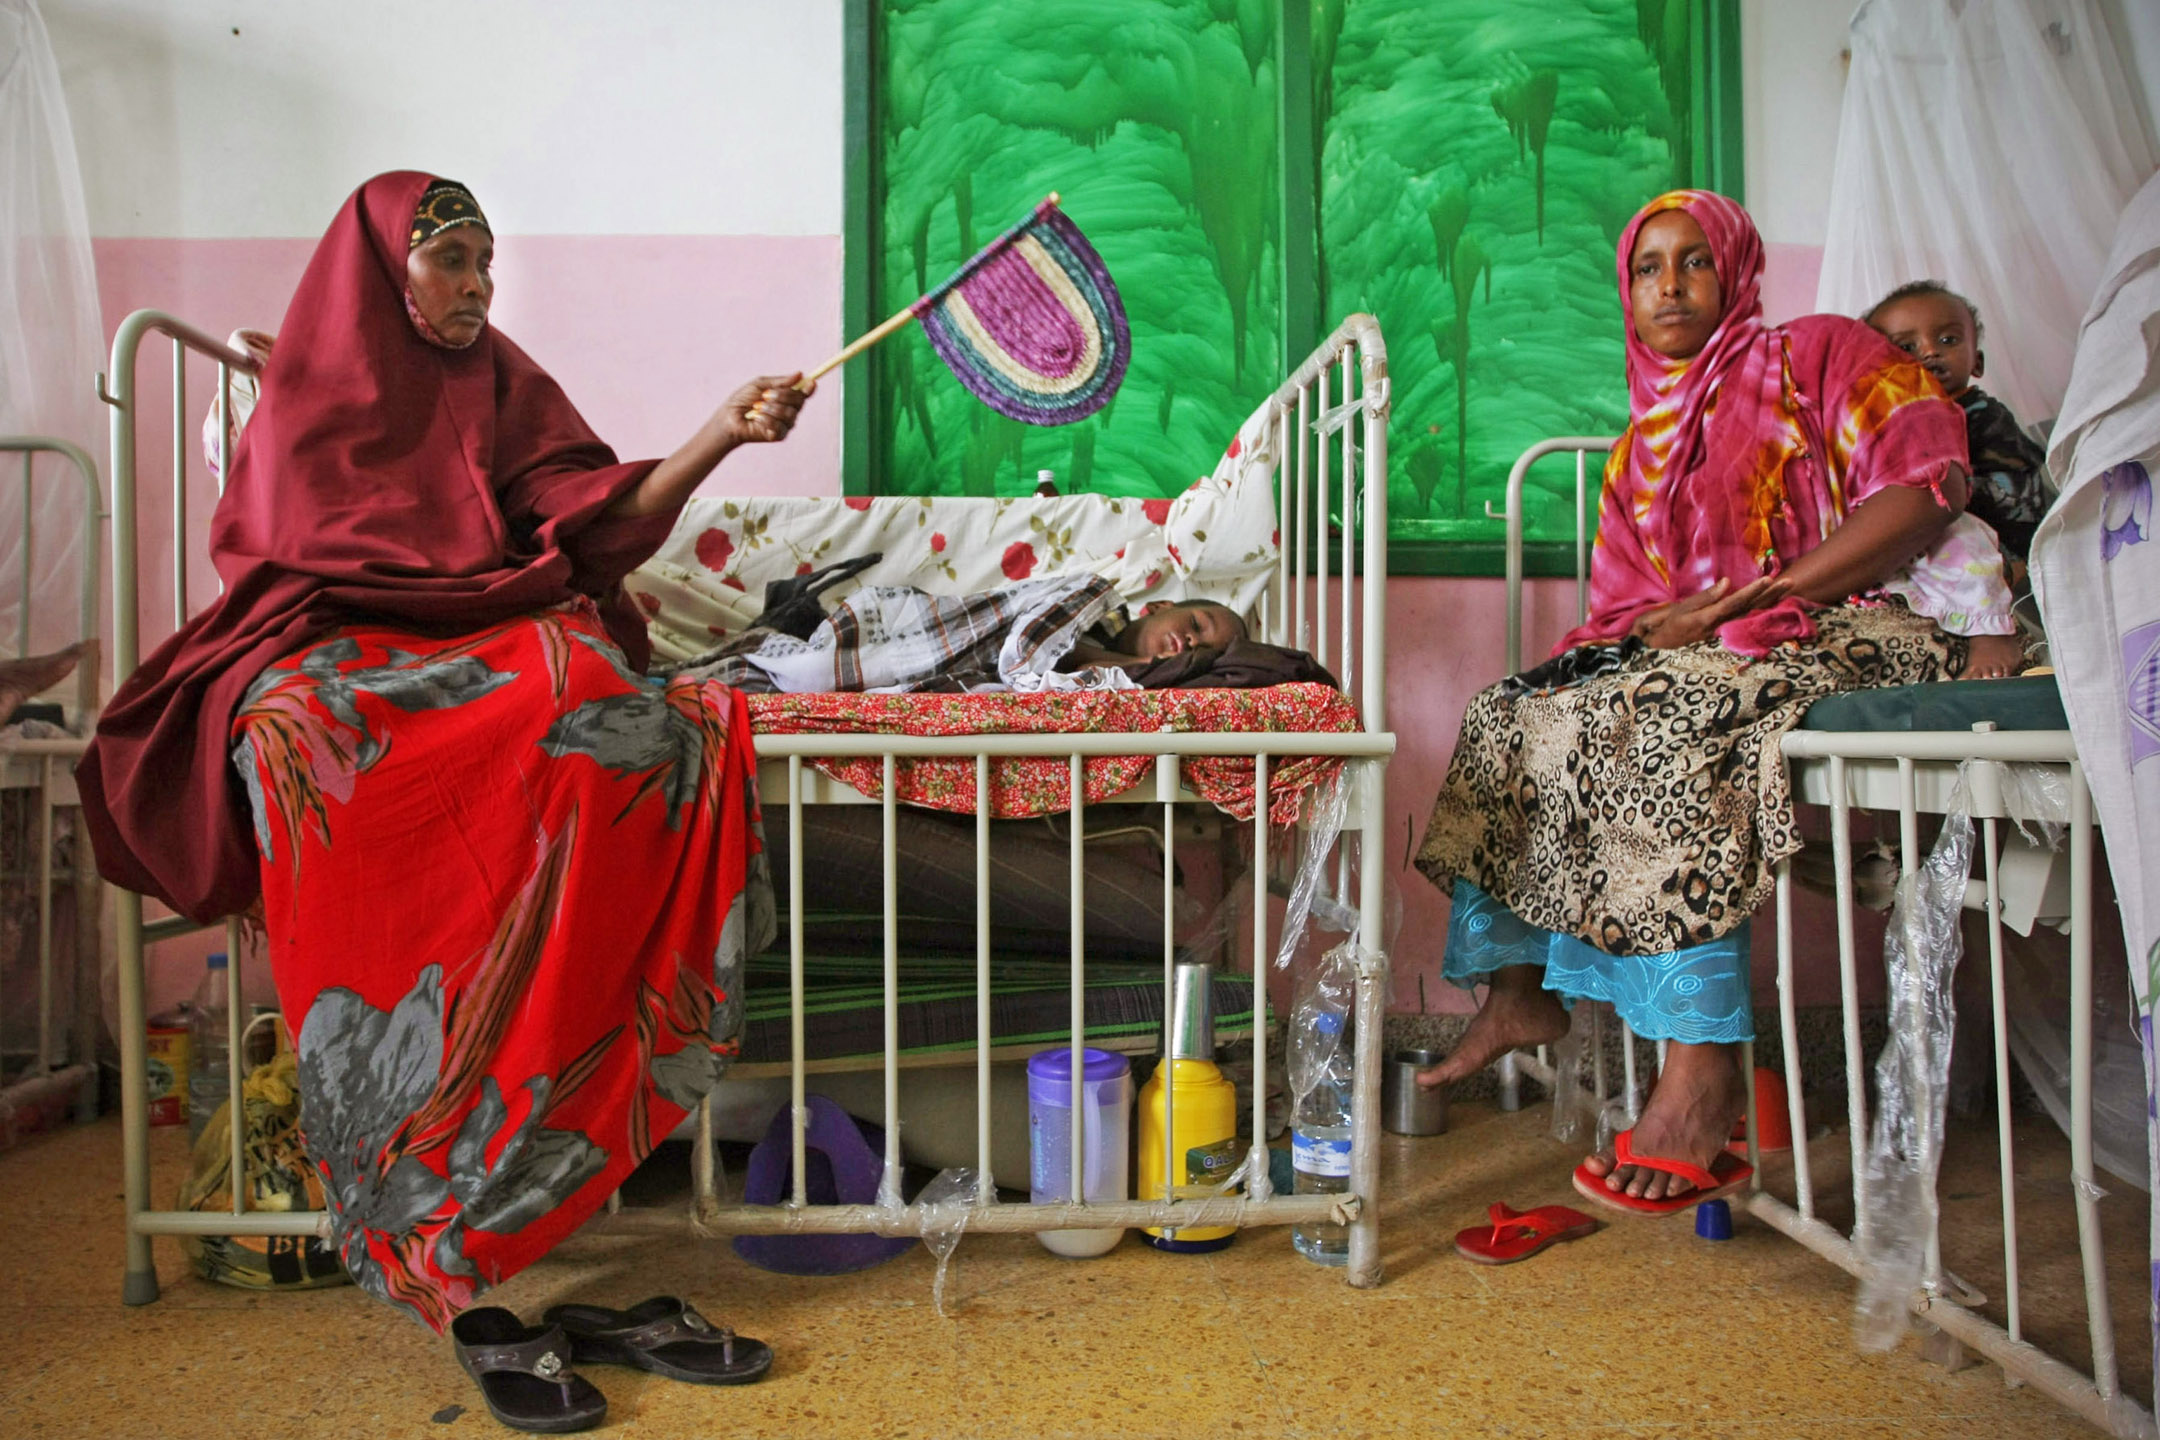 Mothers sit with their malnourished and dehydrated children in a ward at Banadir Hospital in the Somali capital Mogadishu